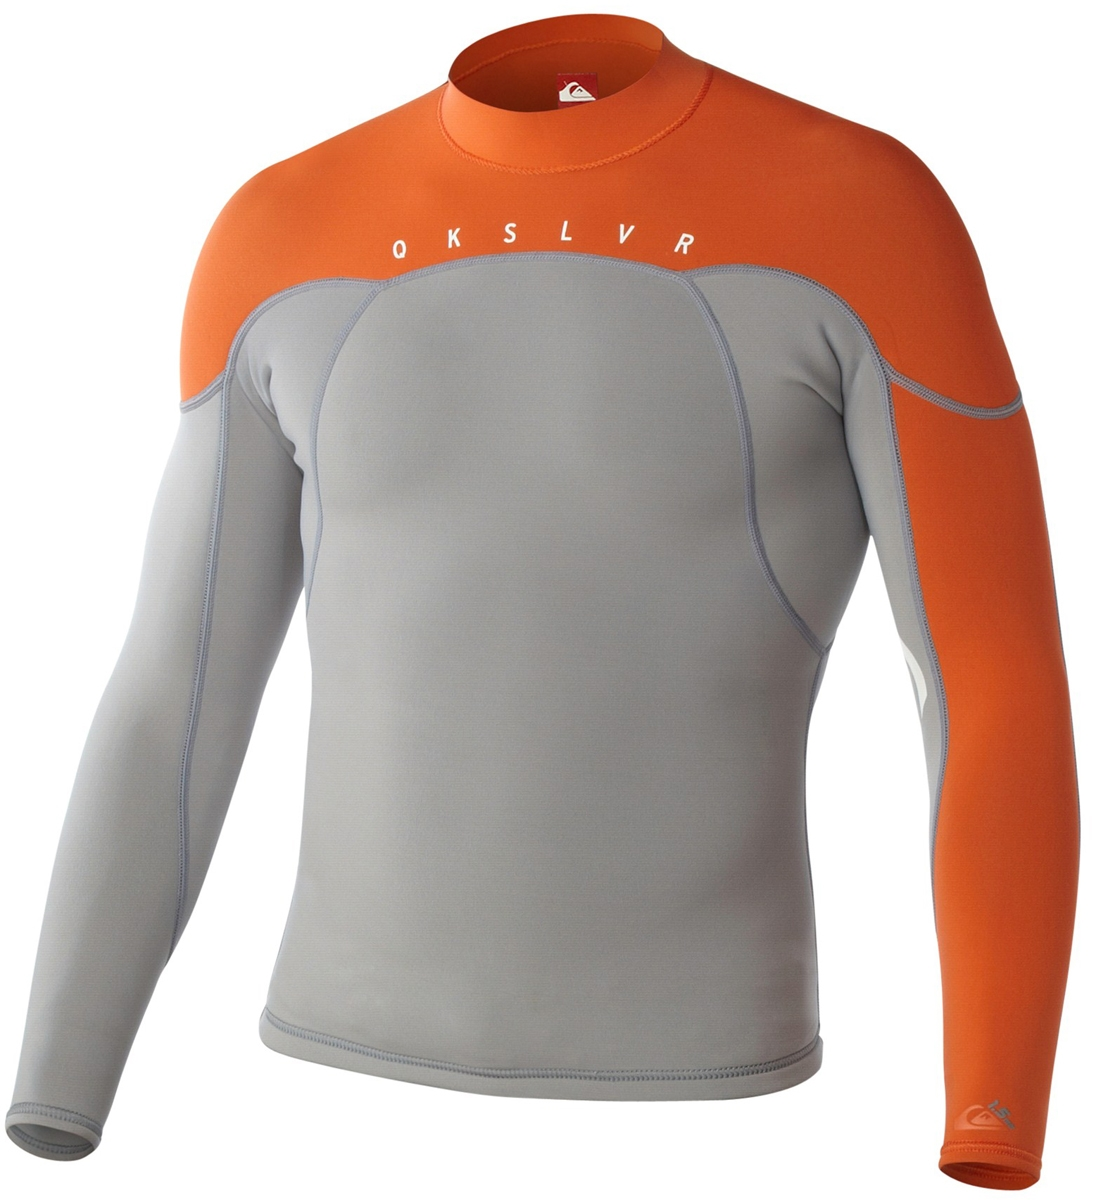 Quiksilver Men's Neoprene Jacket 1.5mm Syncro Grey/Orange